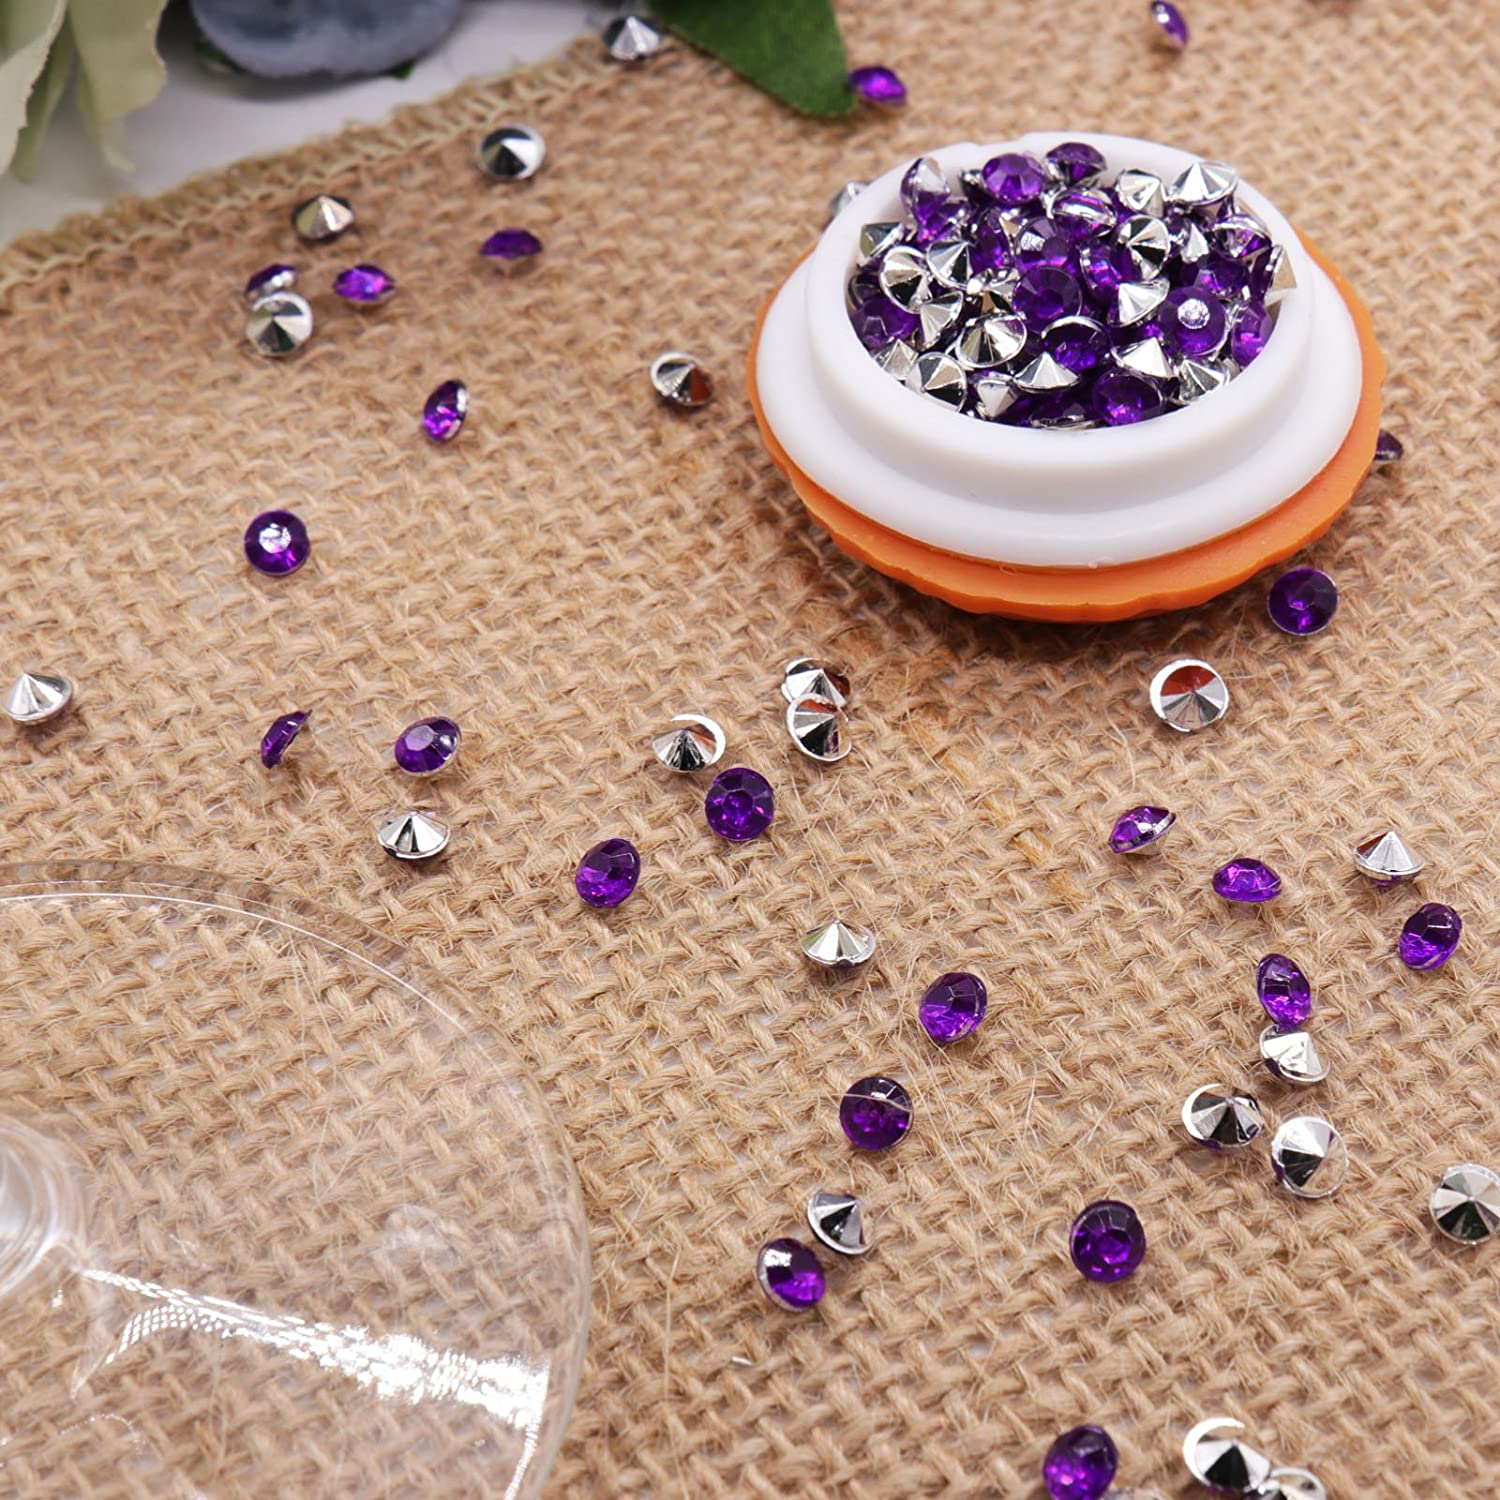 Champagne Arts /& Crafts DIY Ice Rock Treasure Gems BIT.FLY 4.2mm 10000pcs Acrylic Crystal Diamond Vase Fillers for Table Scatter Wedding Event Party Decoration